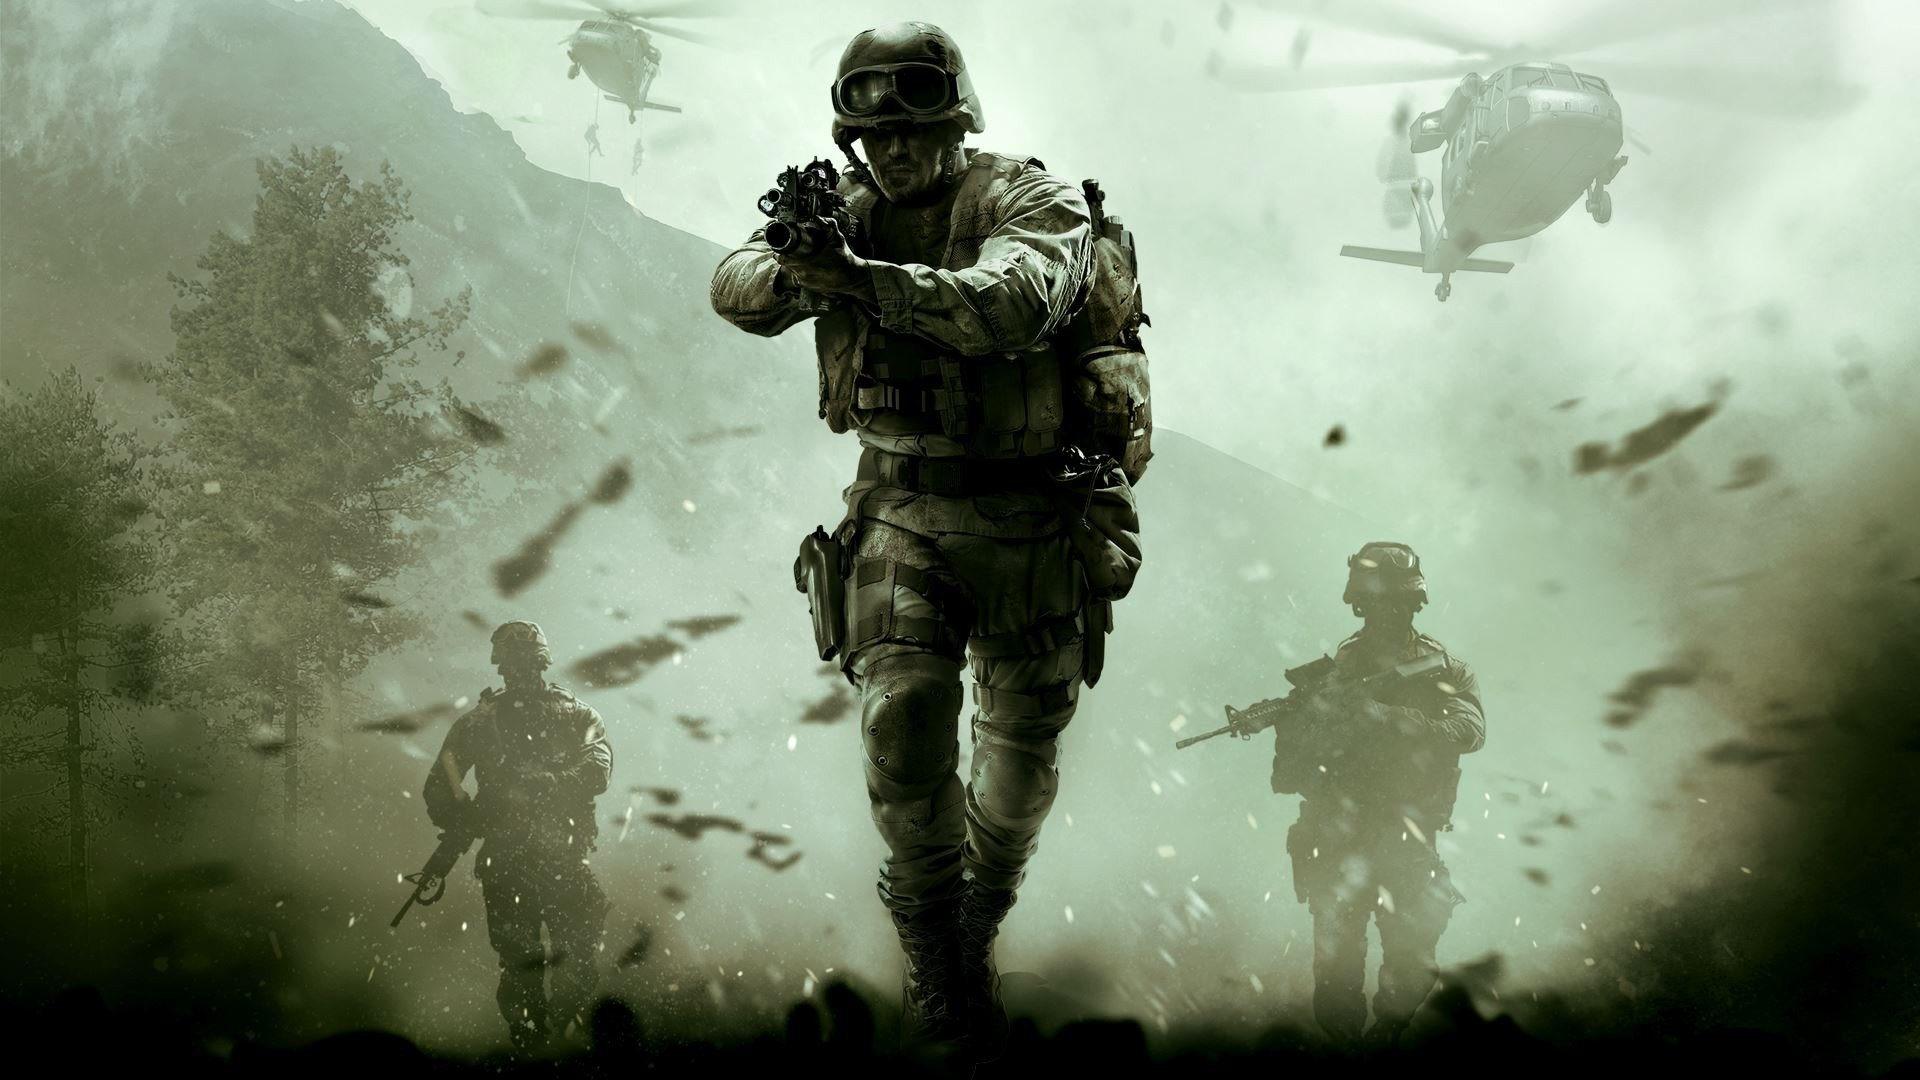 Download Hd 1920x1080 Call Of Duty Modern Warfare Remastered Desktop Background ID86720 For